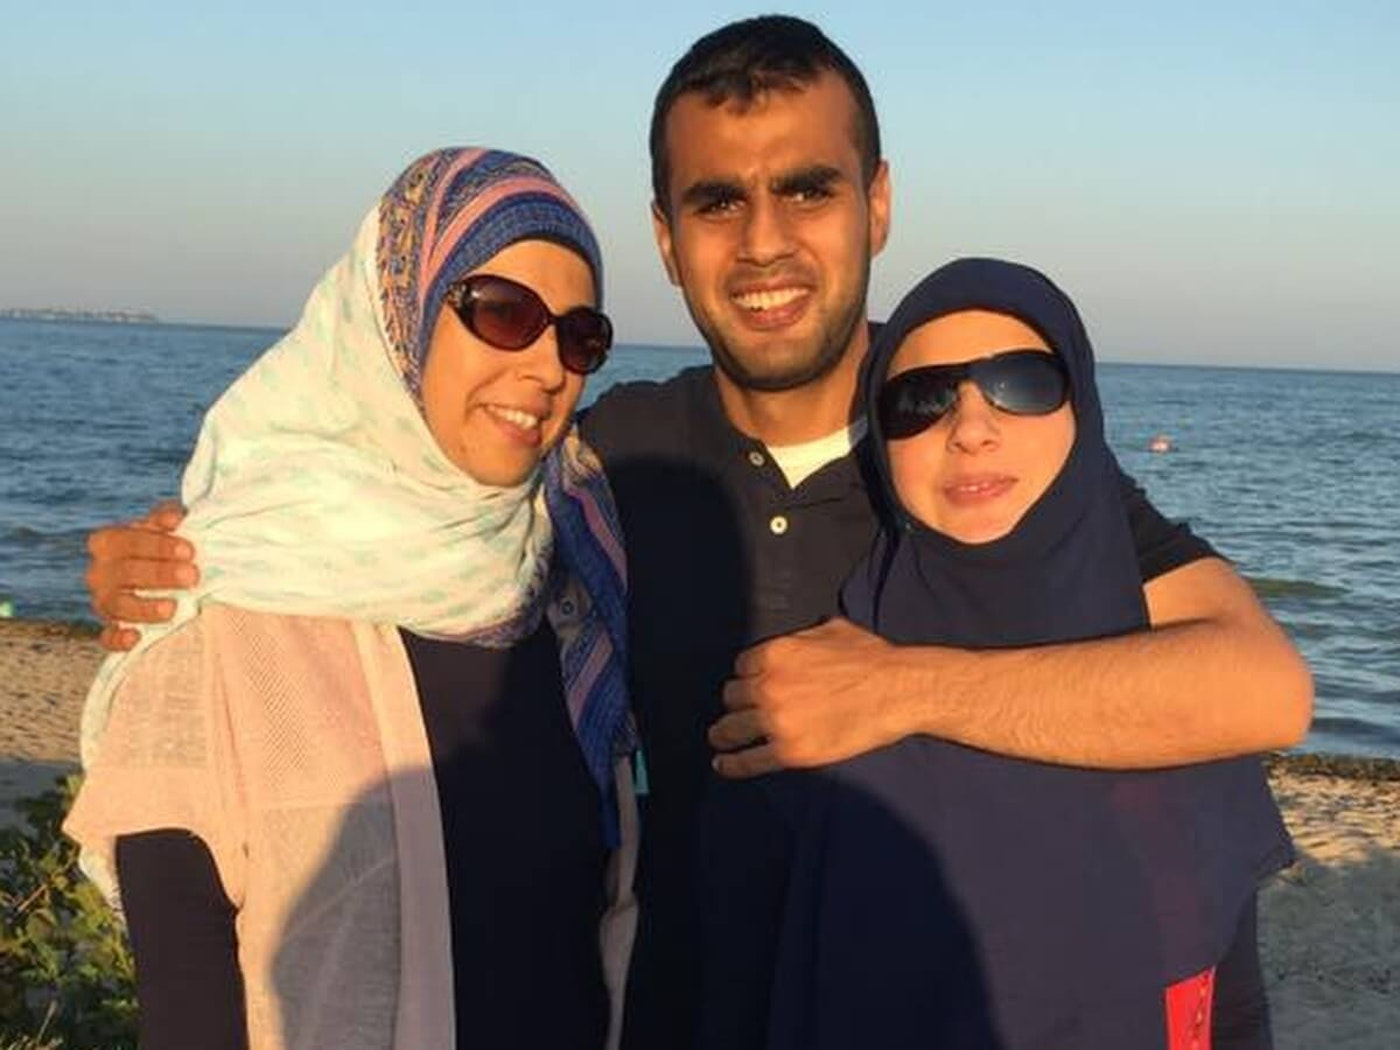 Khodr Farhat in 2017 reunited with his sisters after over eight years apart.